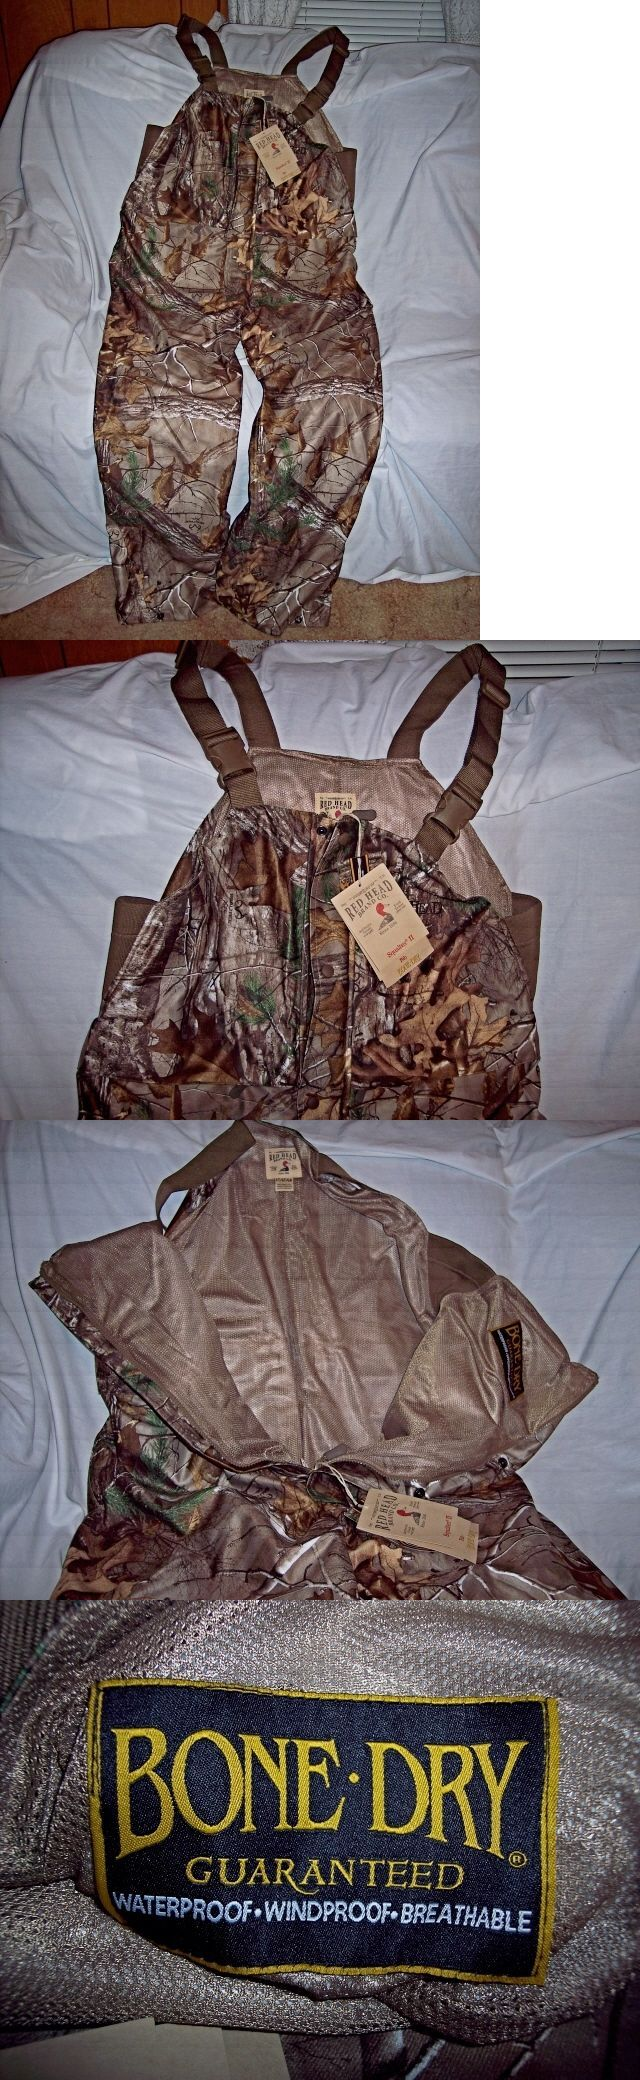 Pants and Bibs 177873: Mens 3X Non Insulated Bibs Realtree Xtra Camo Bib Overalls Water Proof Camo Bibs -> BUY IT NOW ONLY: $109 on eBay!